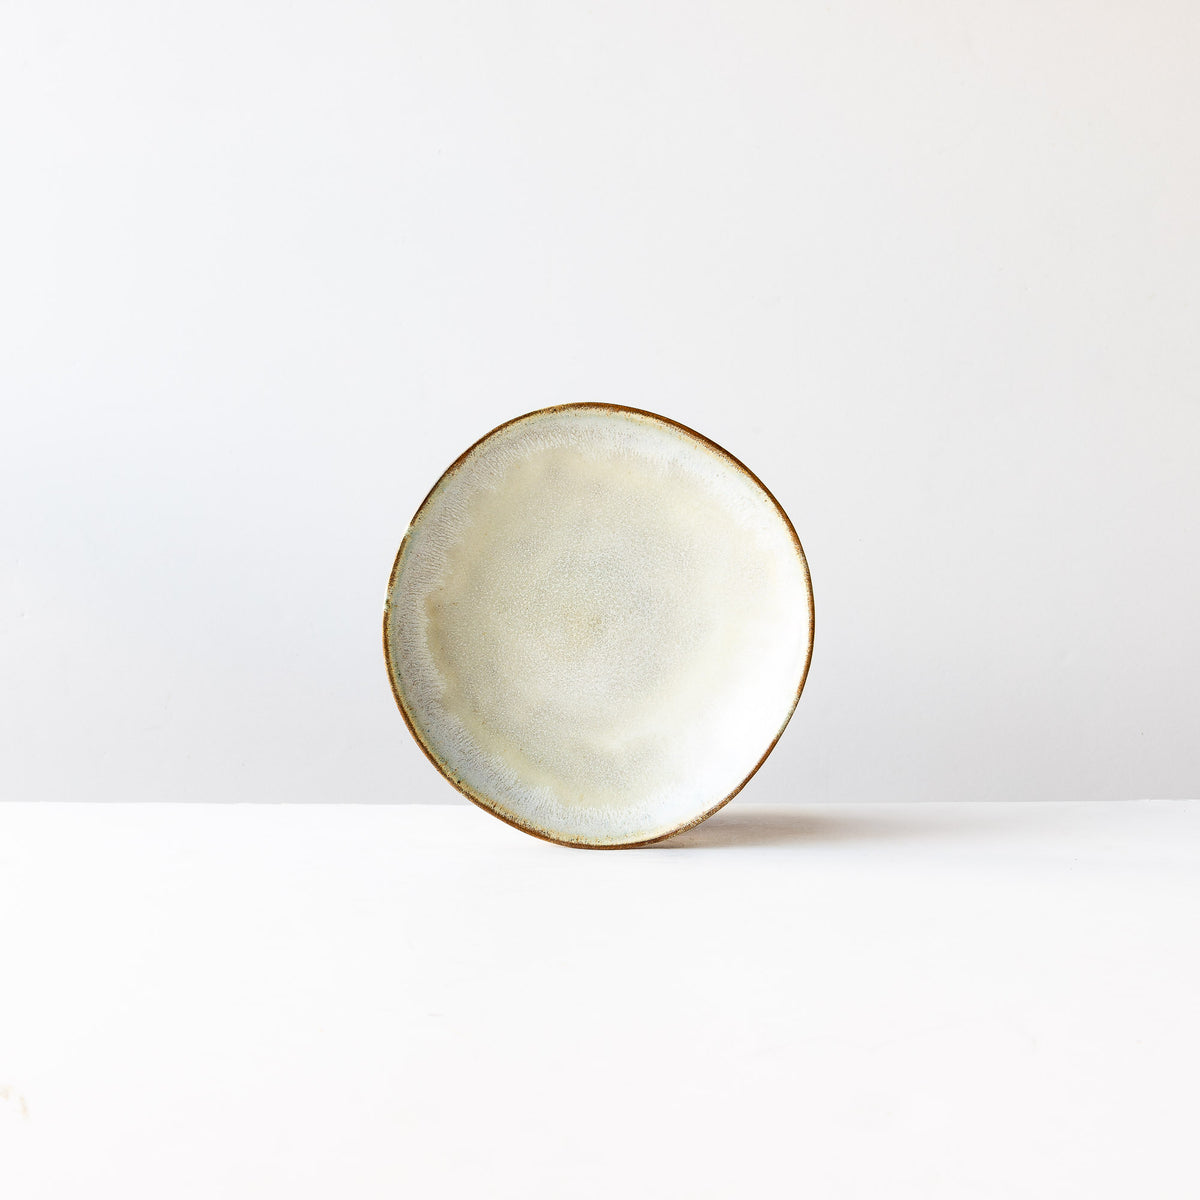 Medium Handbuilt Plate in Red Stoneware & Cream Glaze - Sold by Chic & Basta